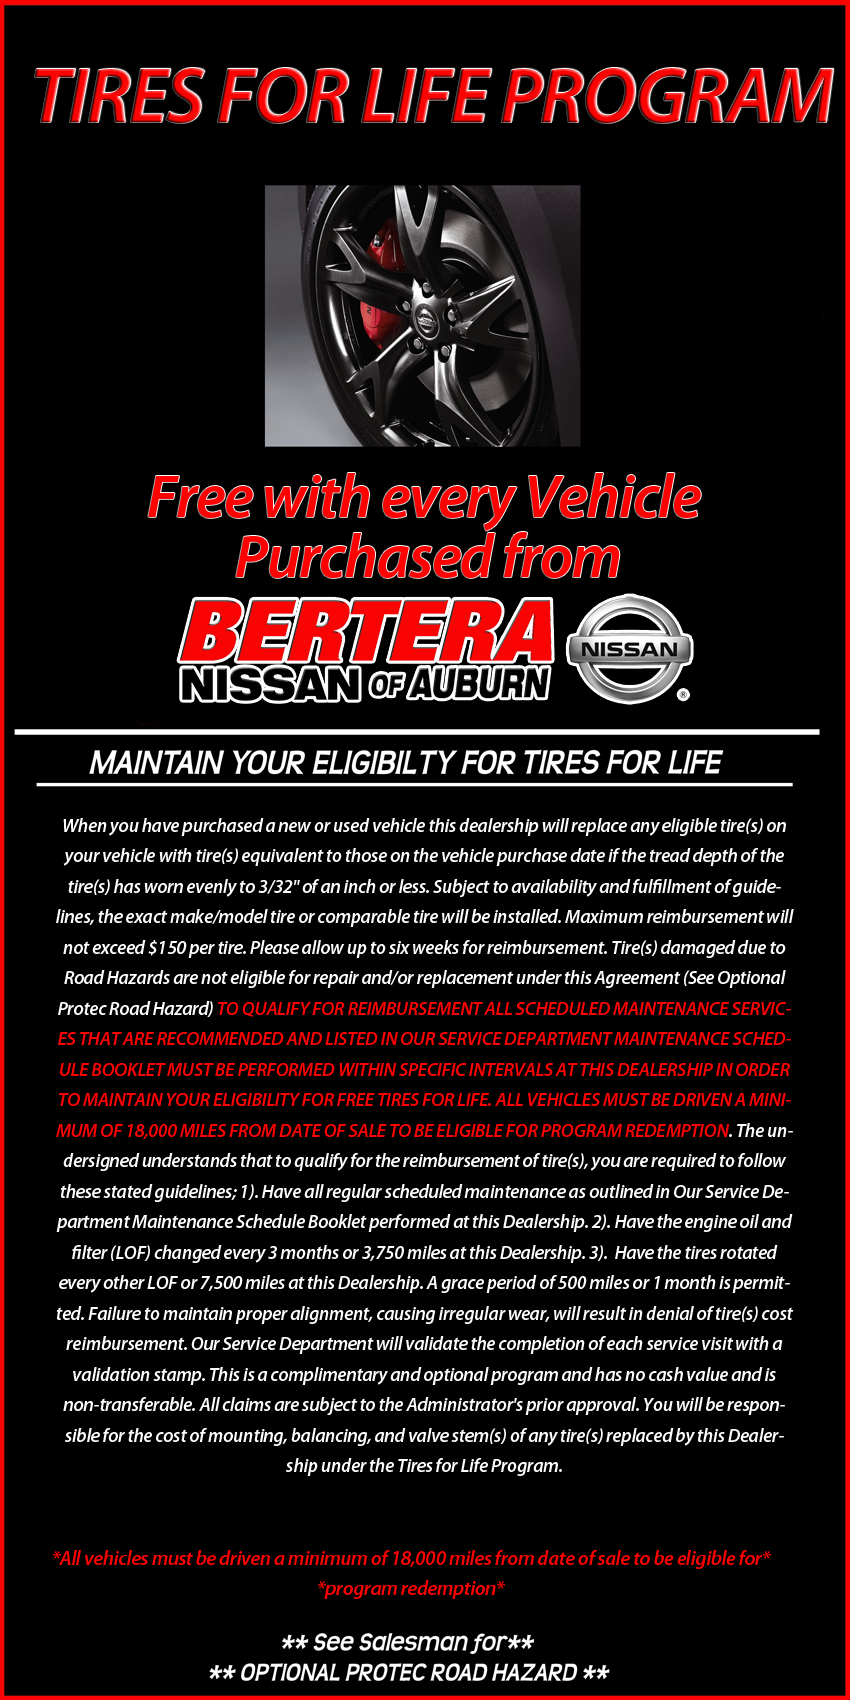 Bertera Nissan Tires for Life Program